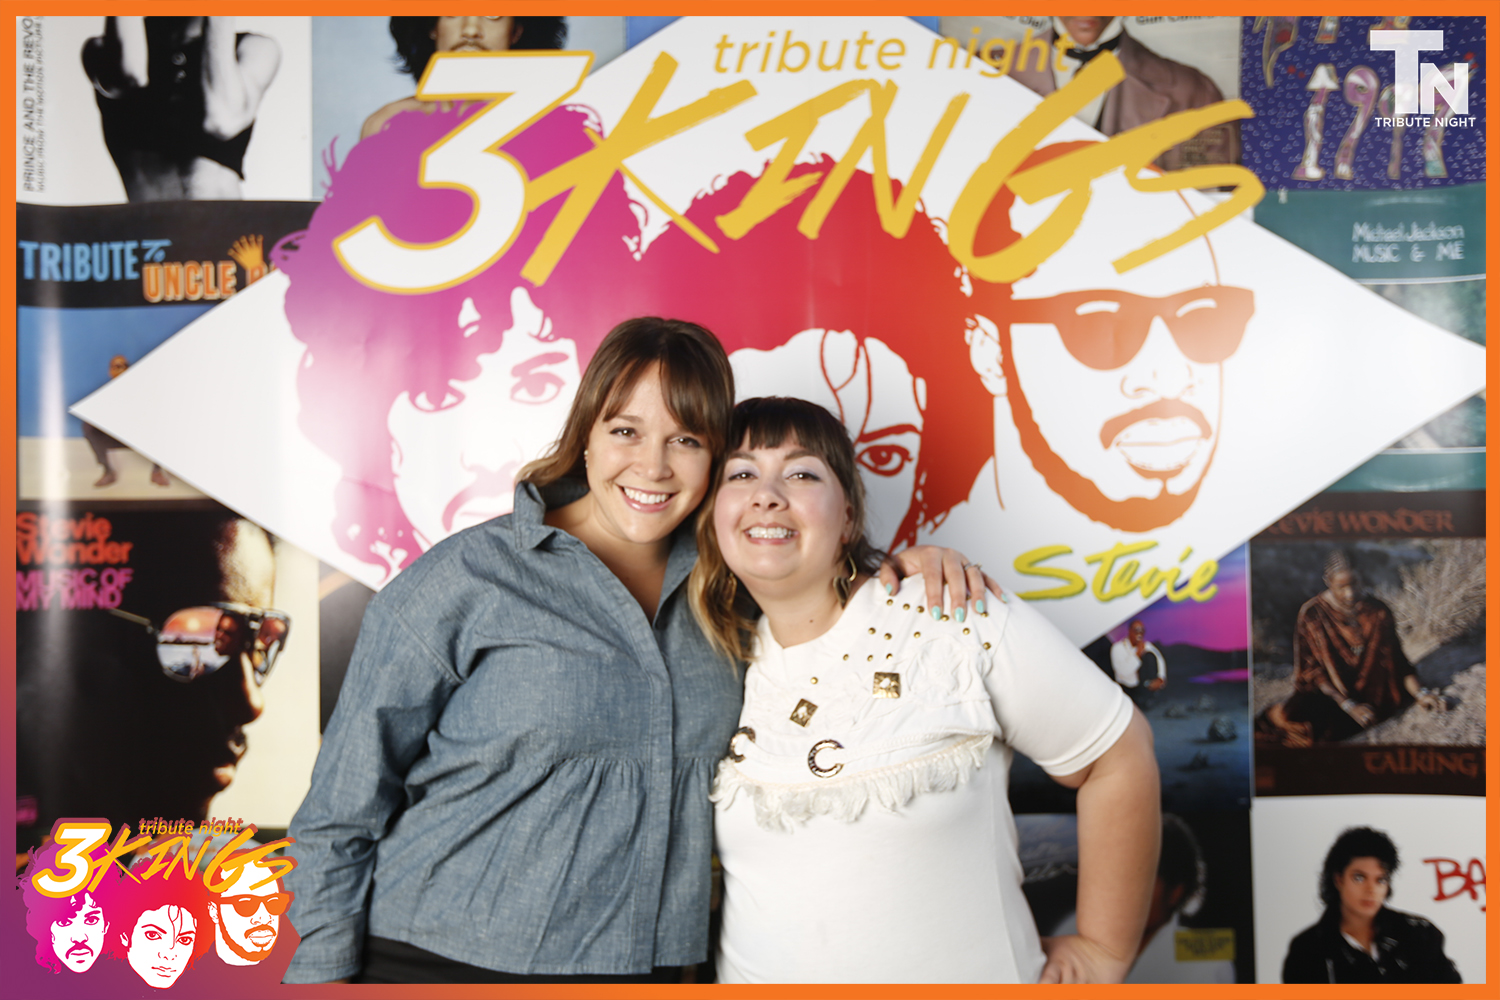 3kings Tribute Night Logo190.jpg